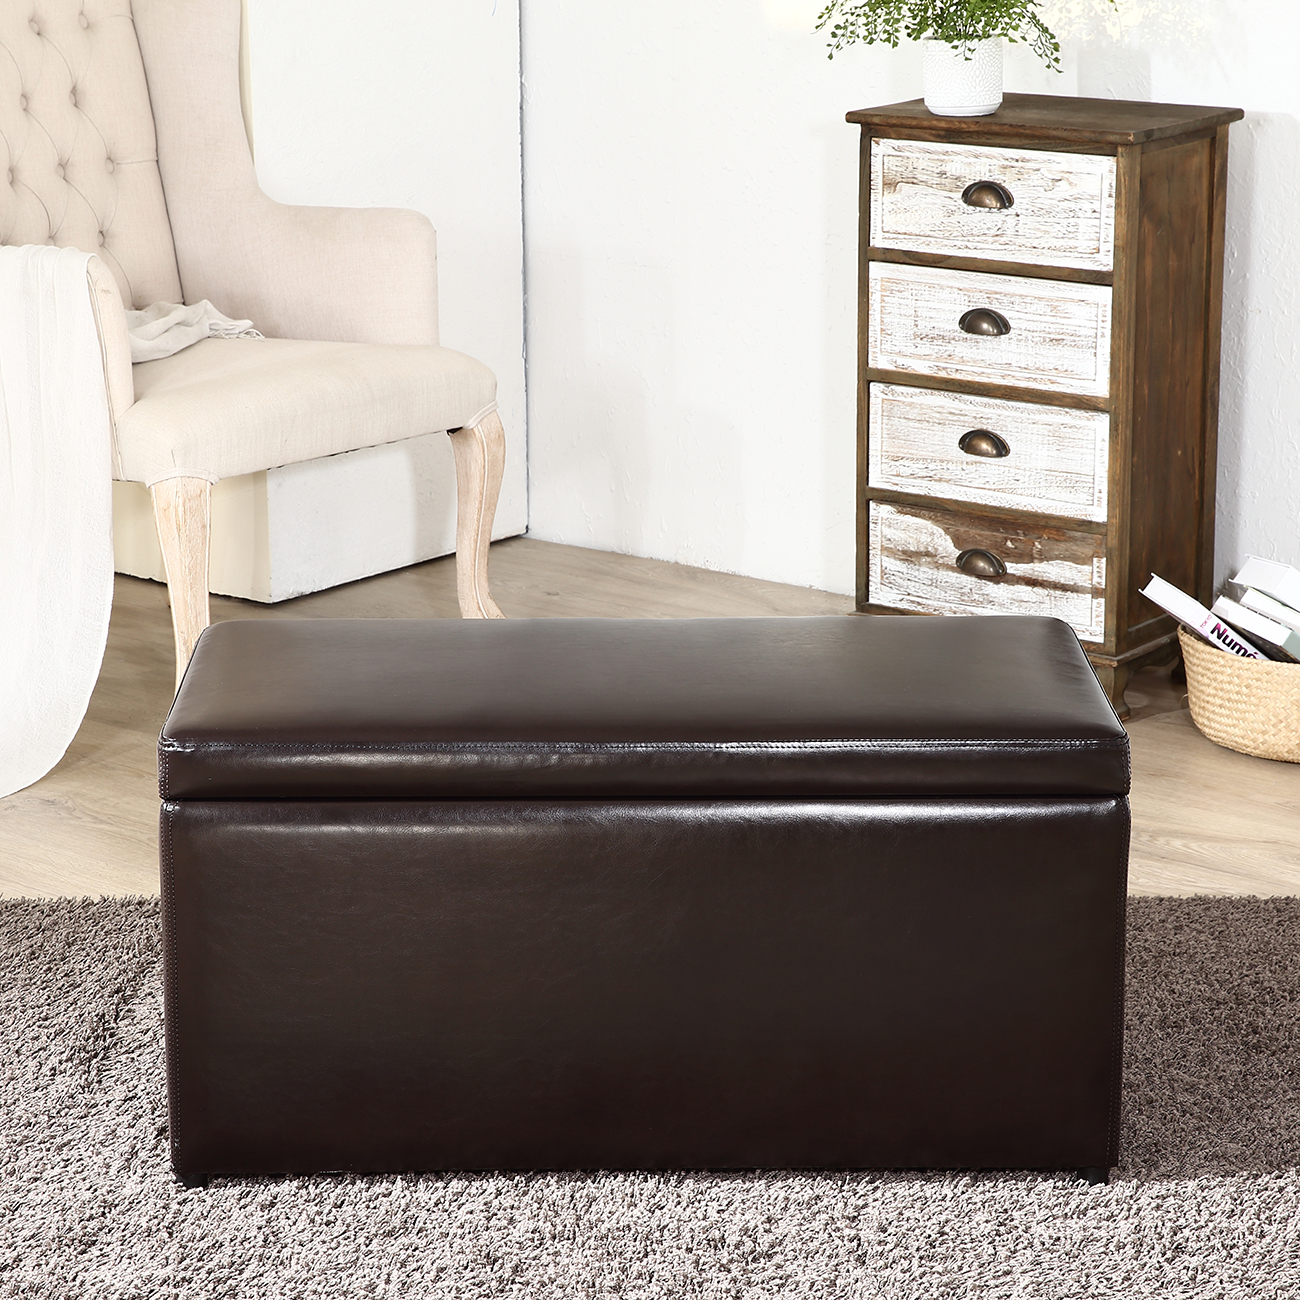 3PC Ottoman Bench Storage Lid Tray Footrest Coffee Table